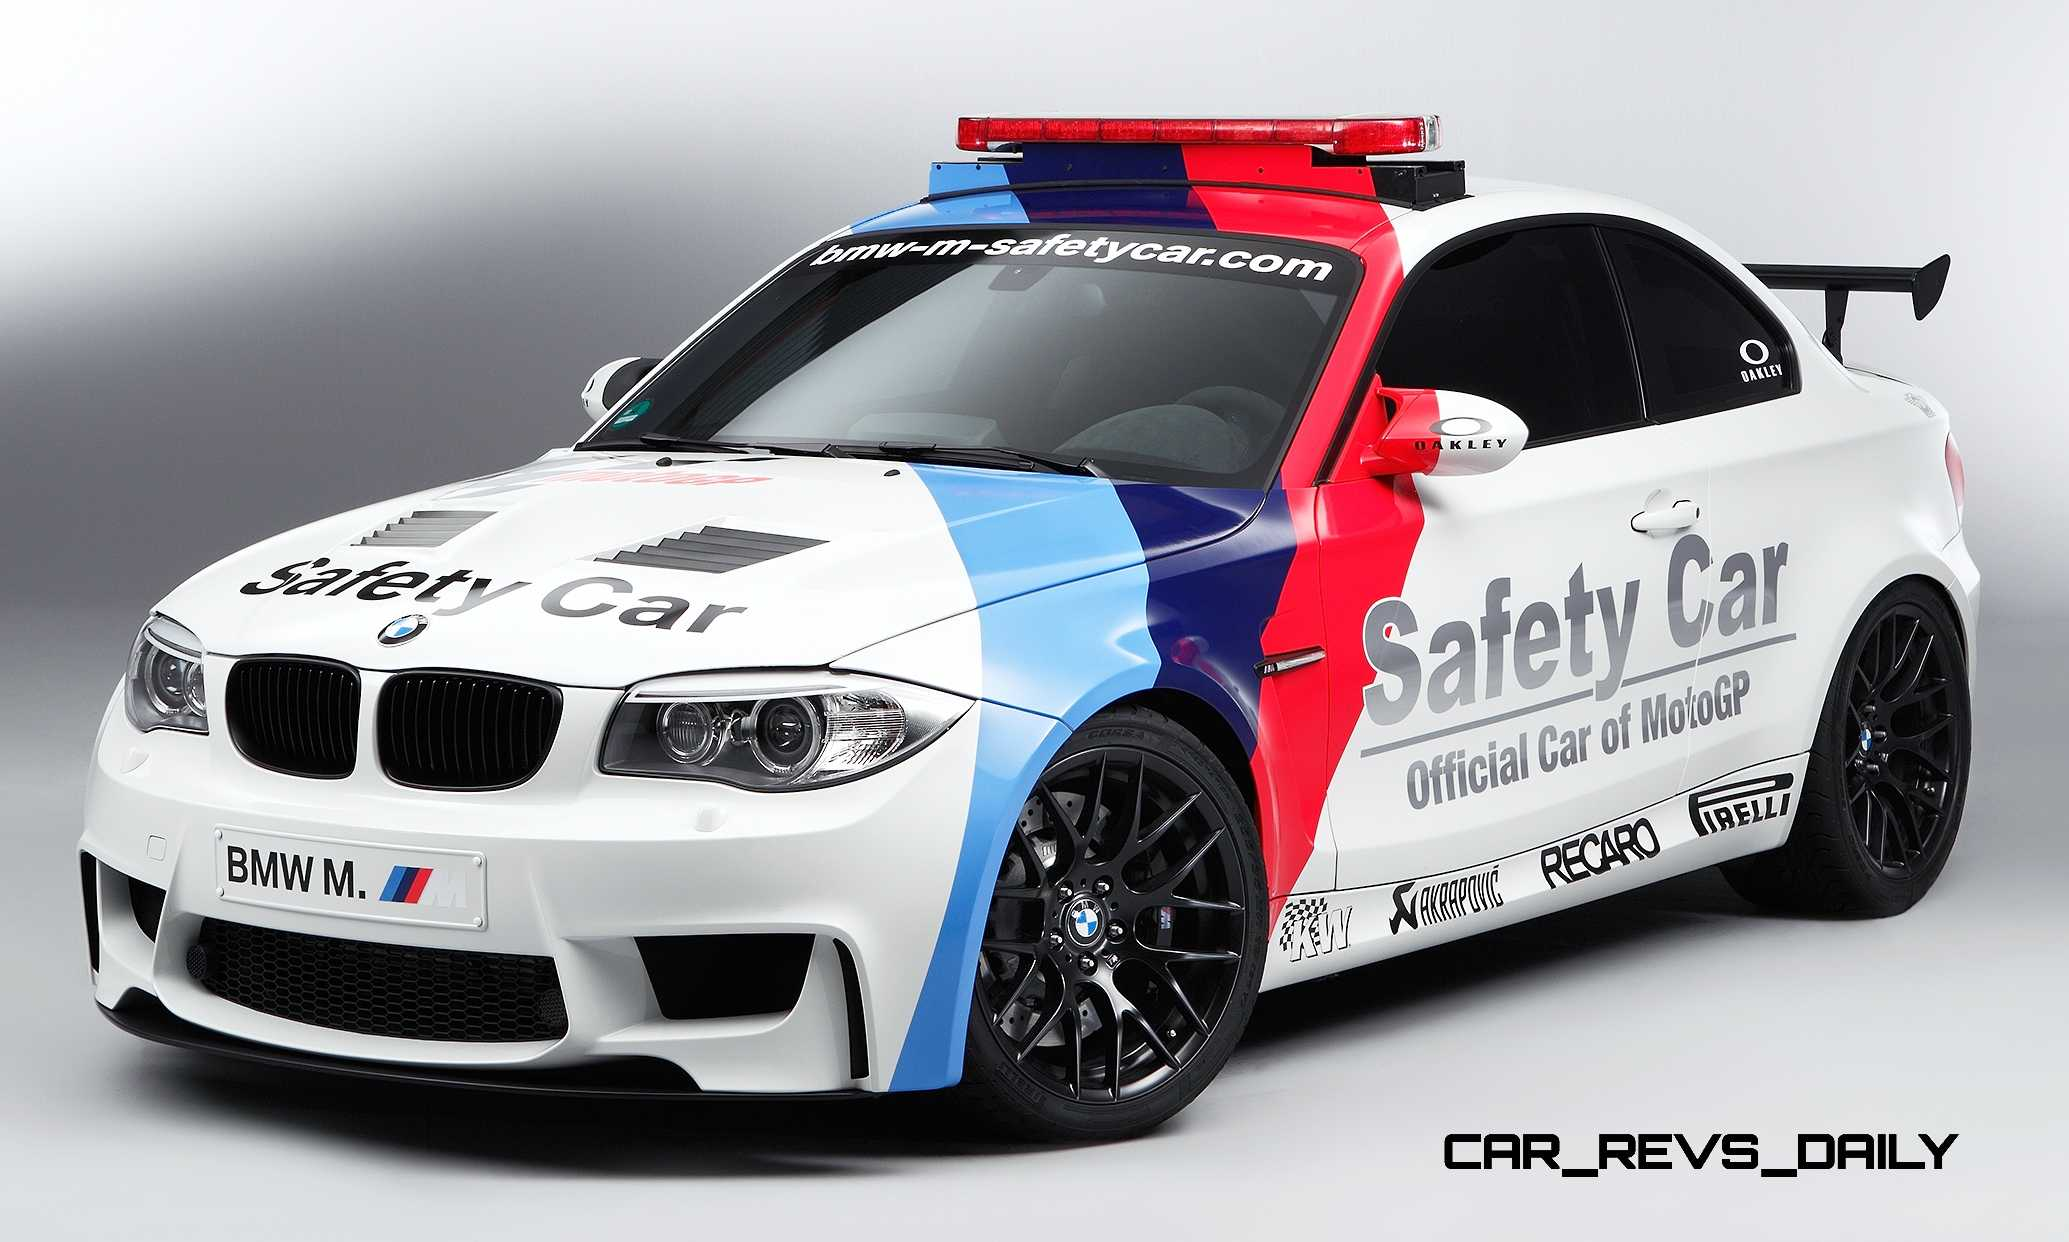 2015 Bmw M4 Safety Car In 30 High Res Photos Now